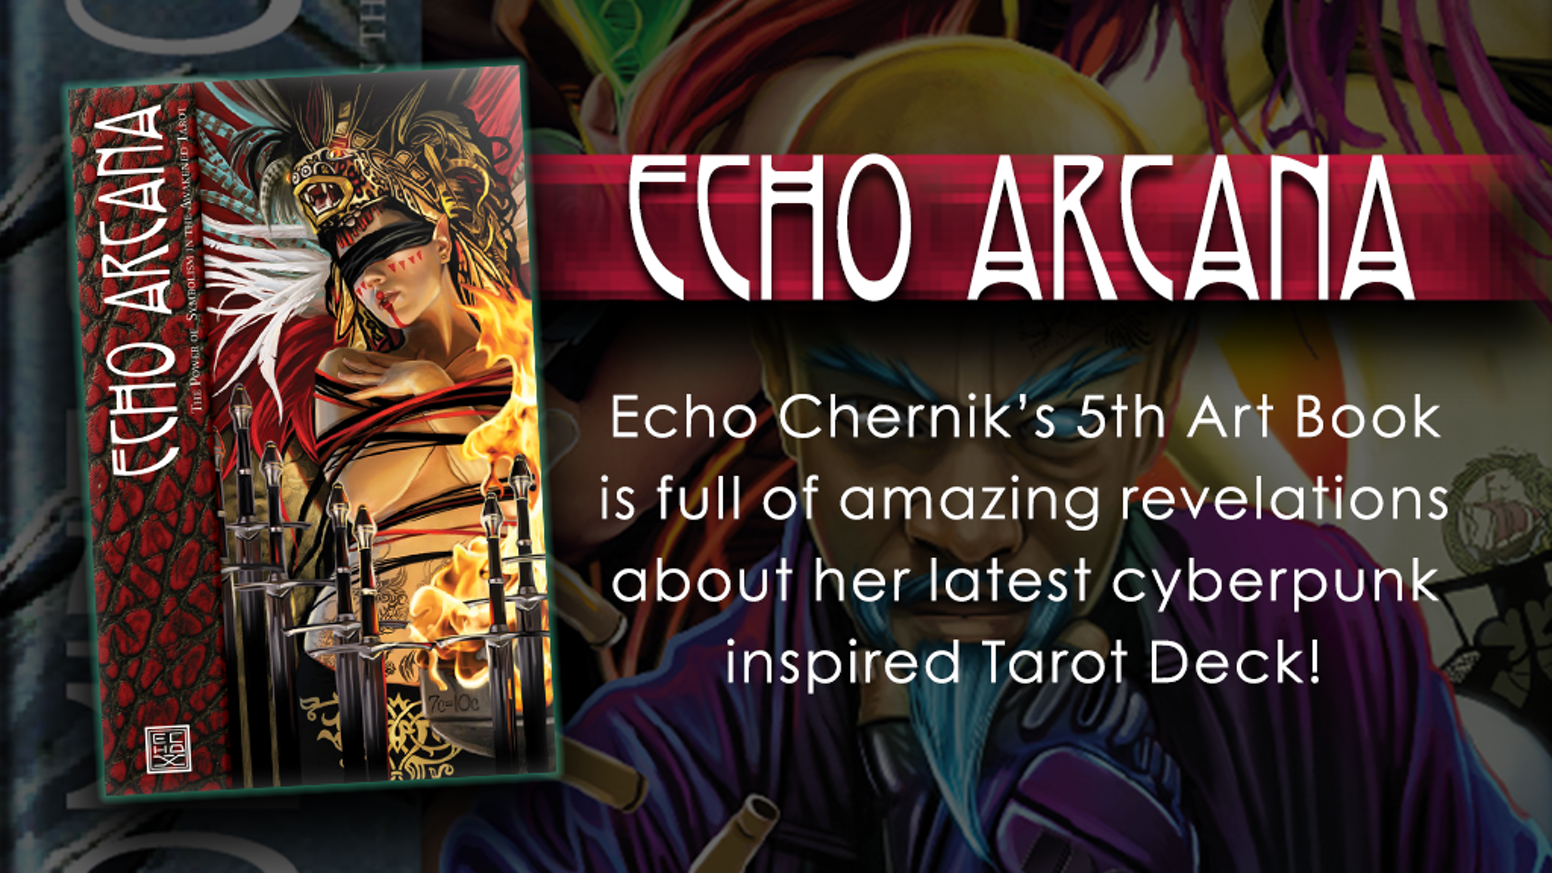 This is a collection of incredible Shadowrun art by Echo Chernik. It includes the vision and symbolism behind the SR Tarot and more.